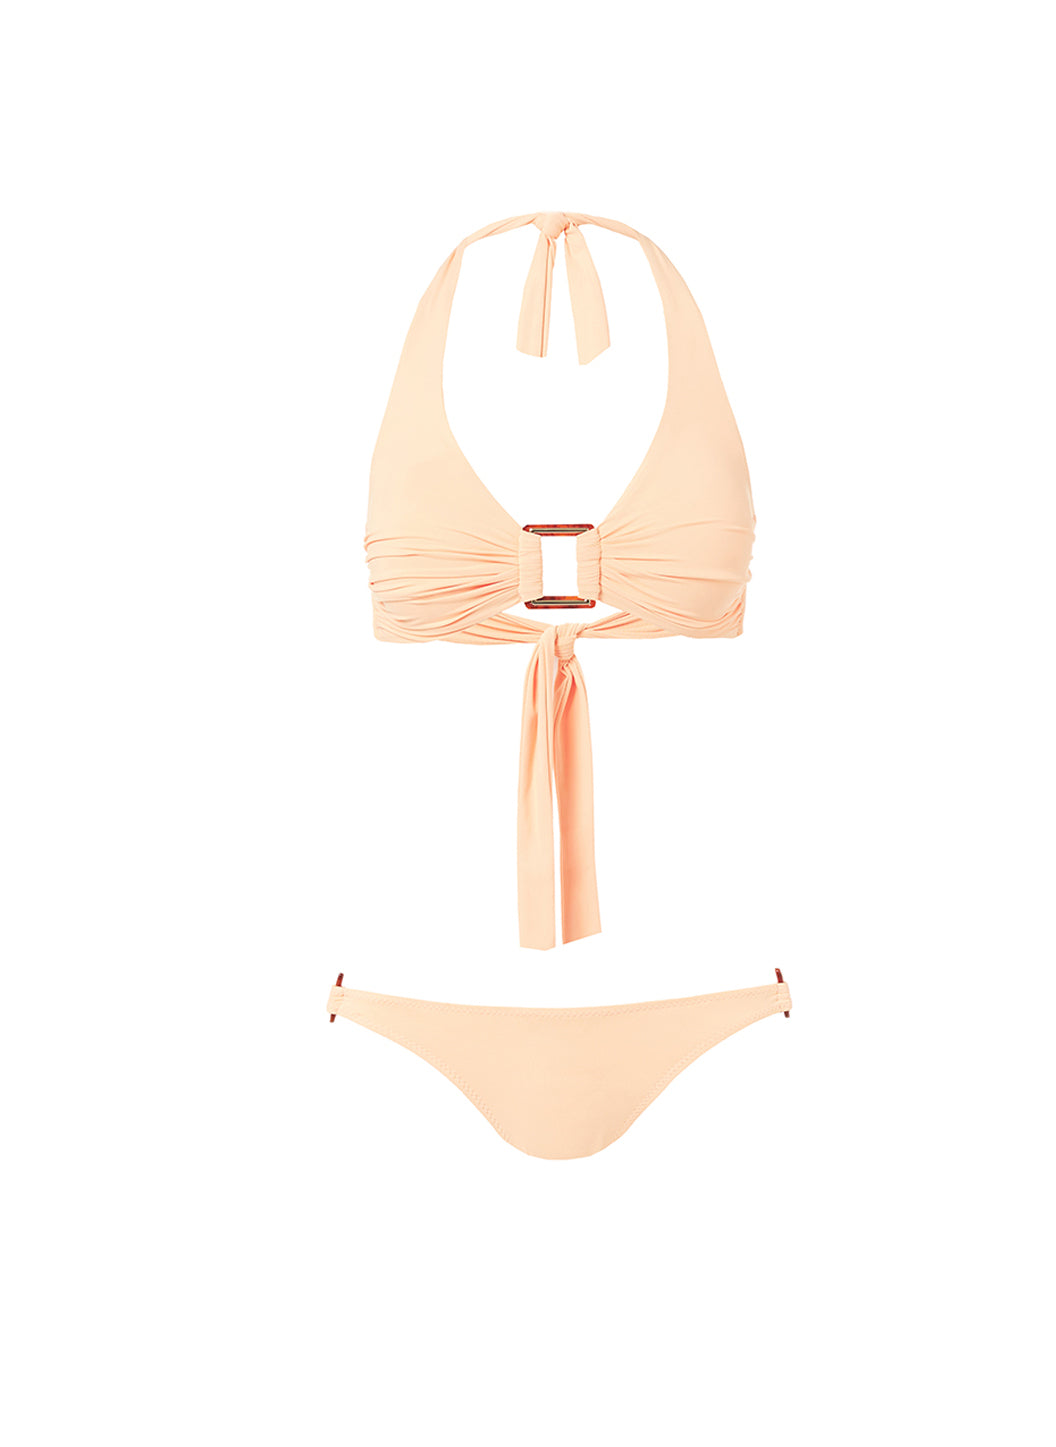 Paris Mango Halterneck Rectangle Trim Bikini - Melissa Odabash Halterneck Bikinis